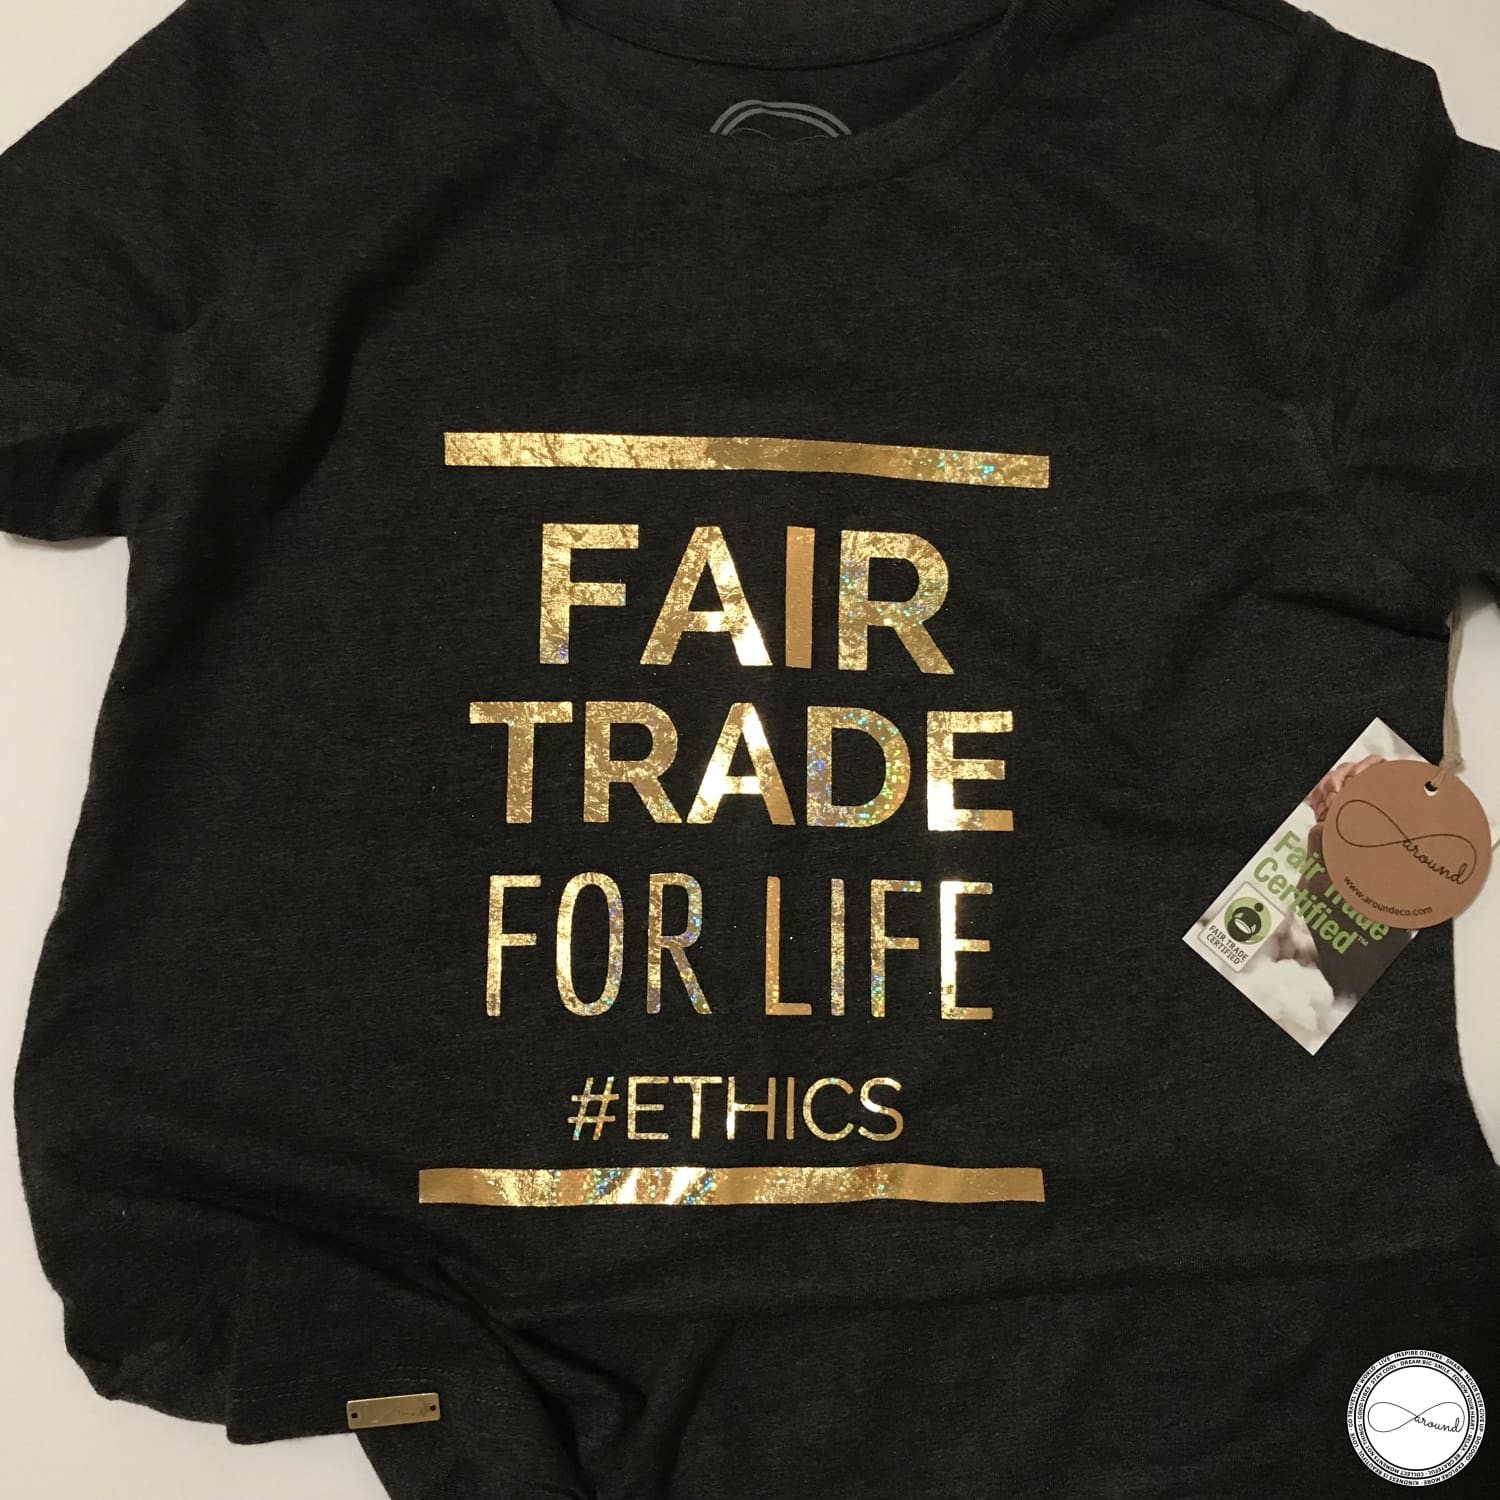 Fair Trade For Life #ethics - T-shirt Custom Made